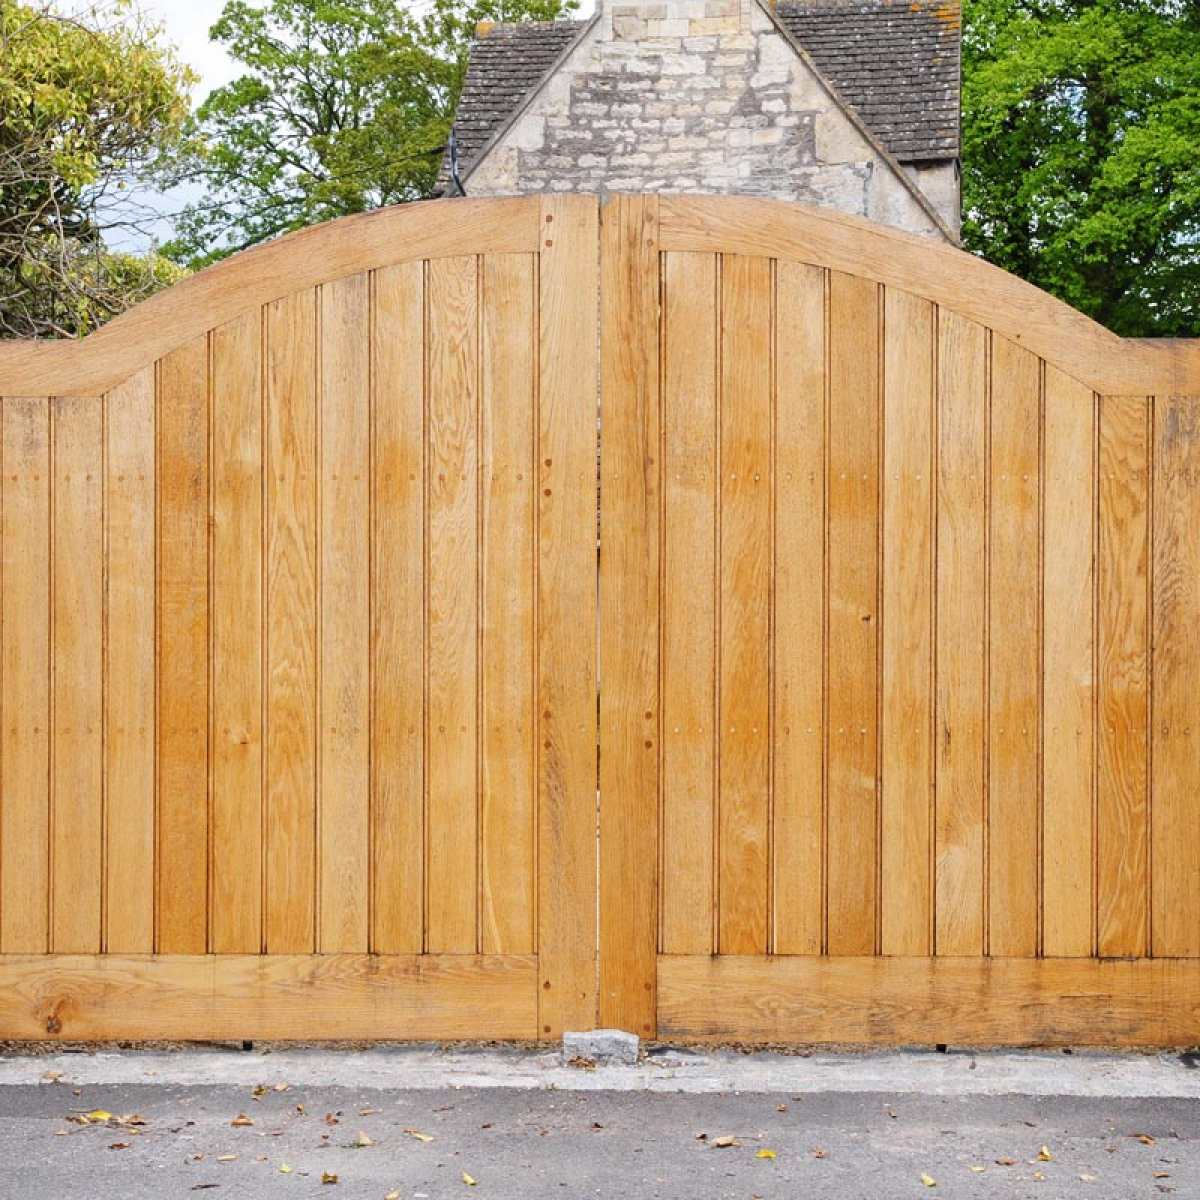 made to measure gate Image by Websters Timber